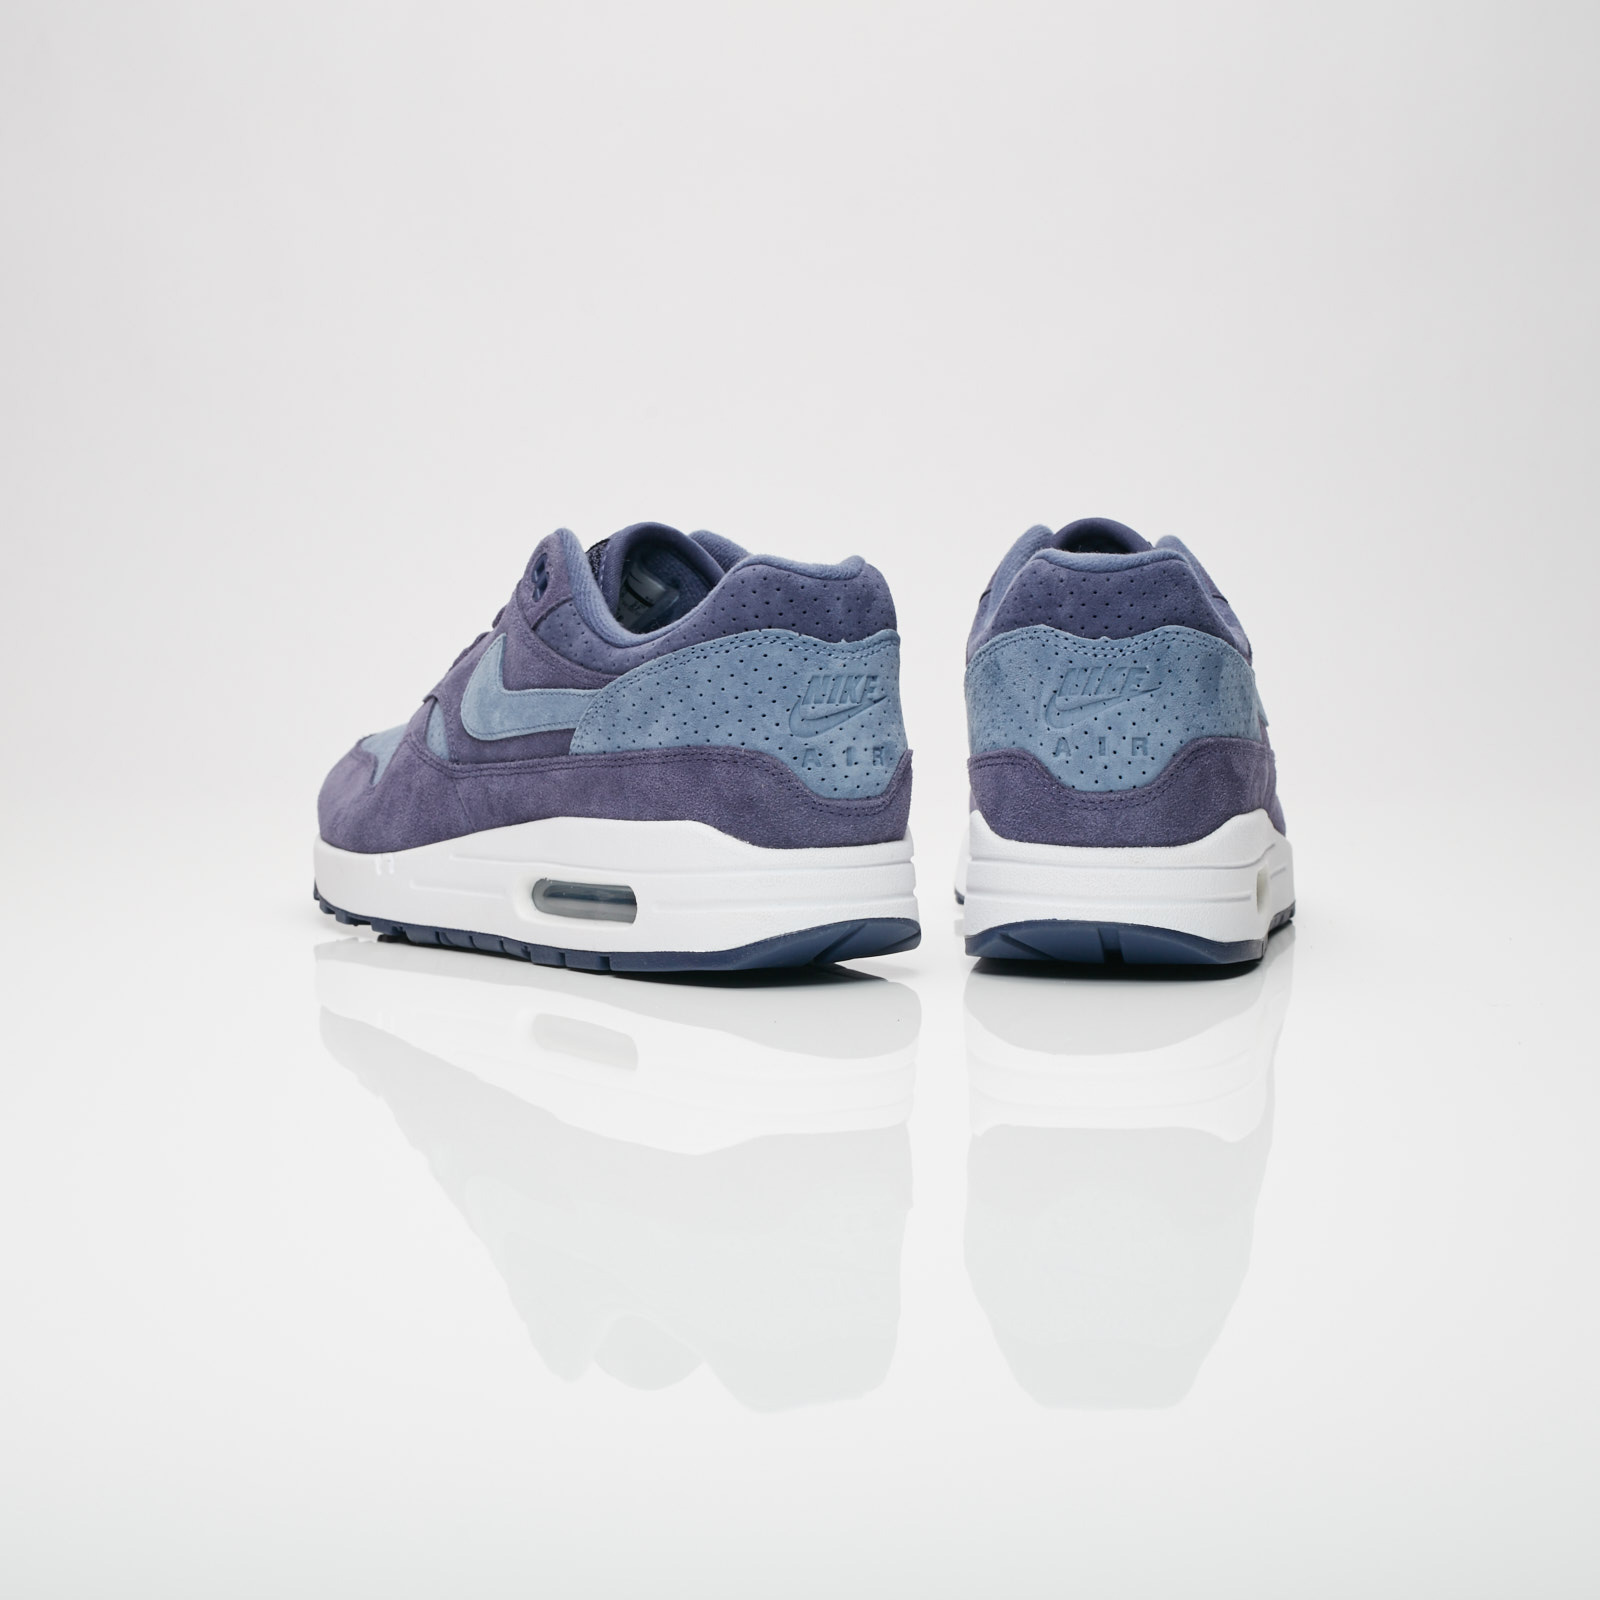 sneakers for cheap 7762f 8cbbf Nike Air Max 1 Premium - 875844-501 - Sneakersnstuff   sneakers    streetwear online since 1999